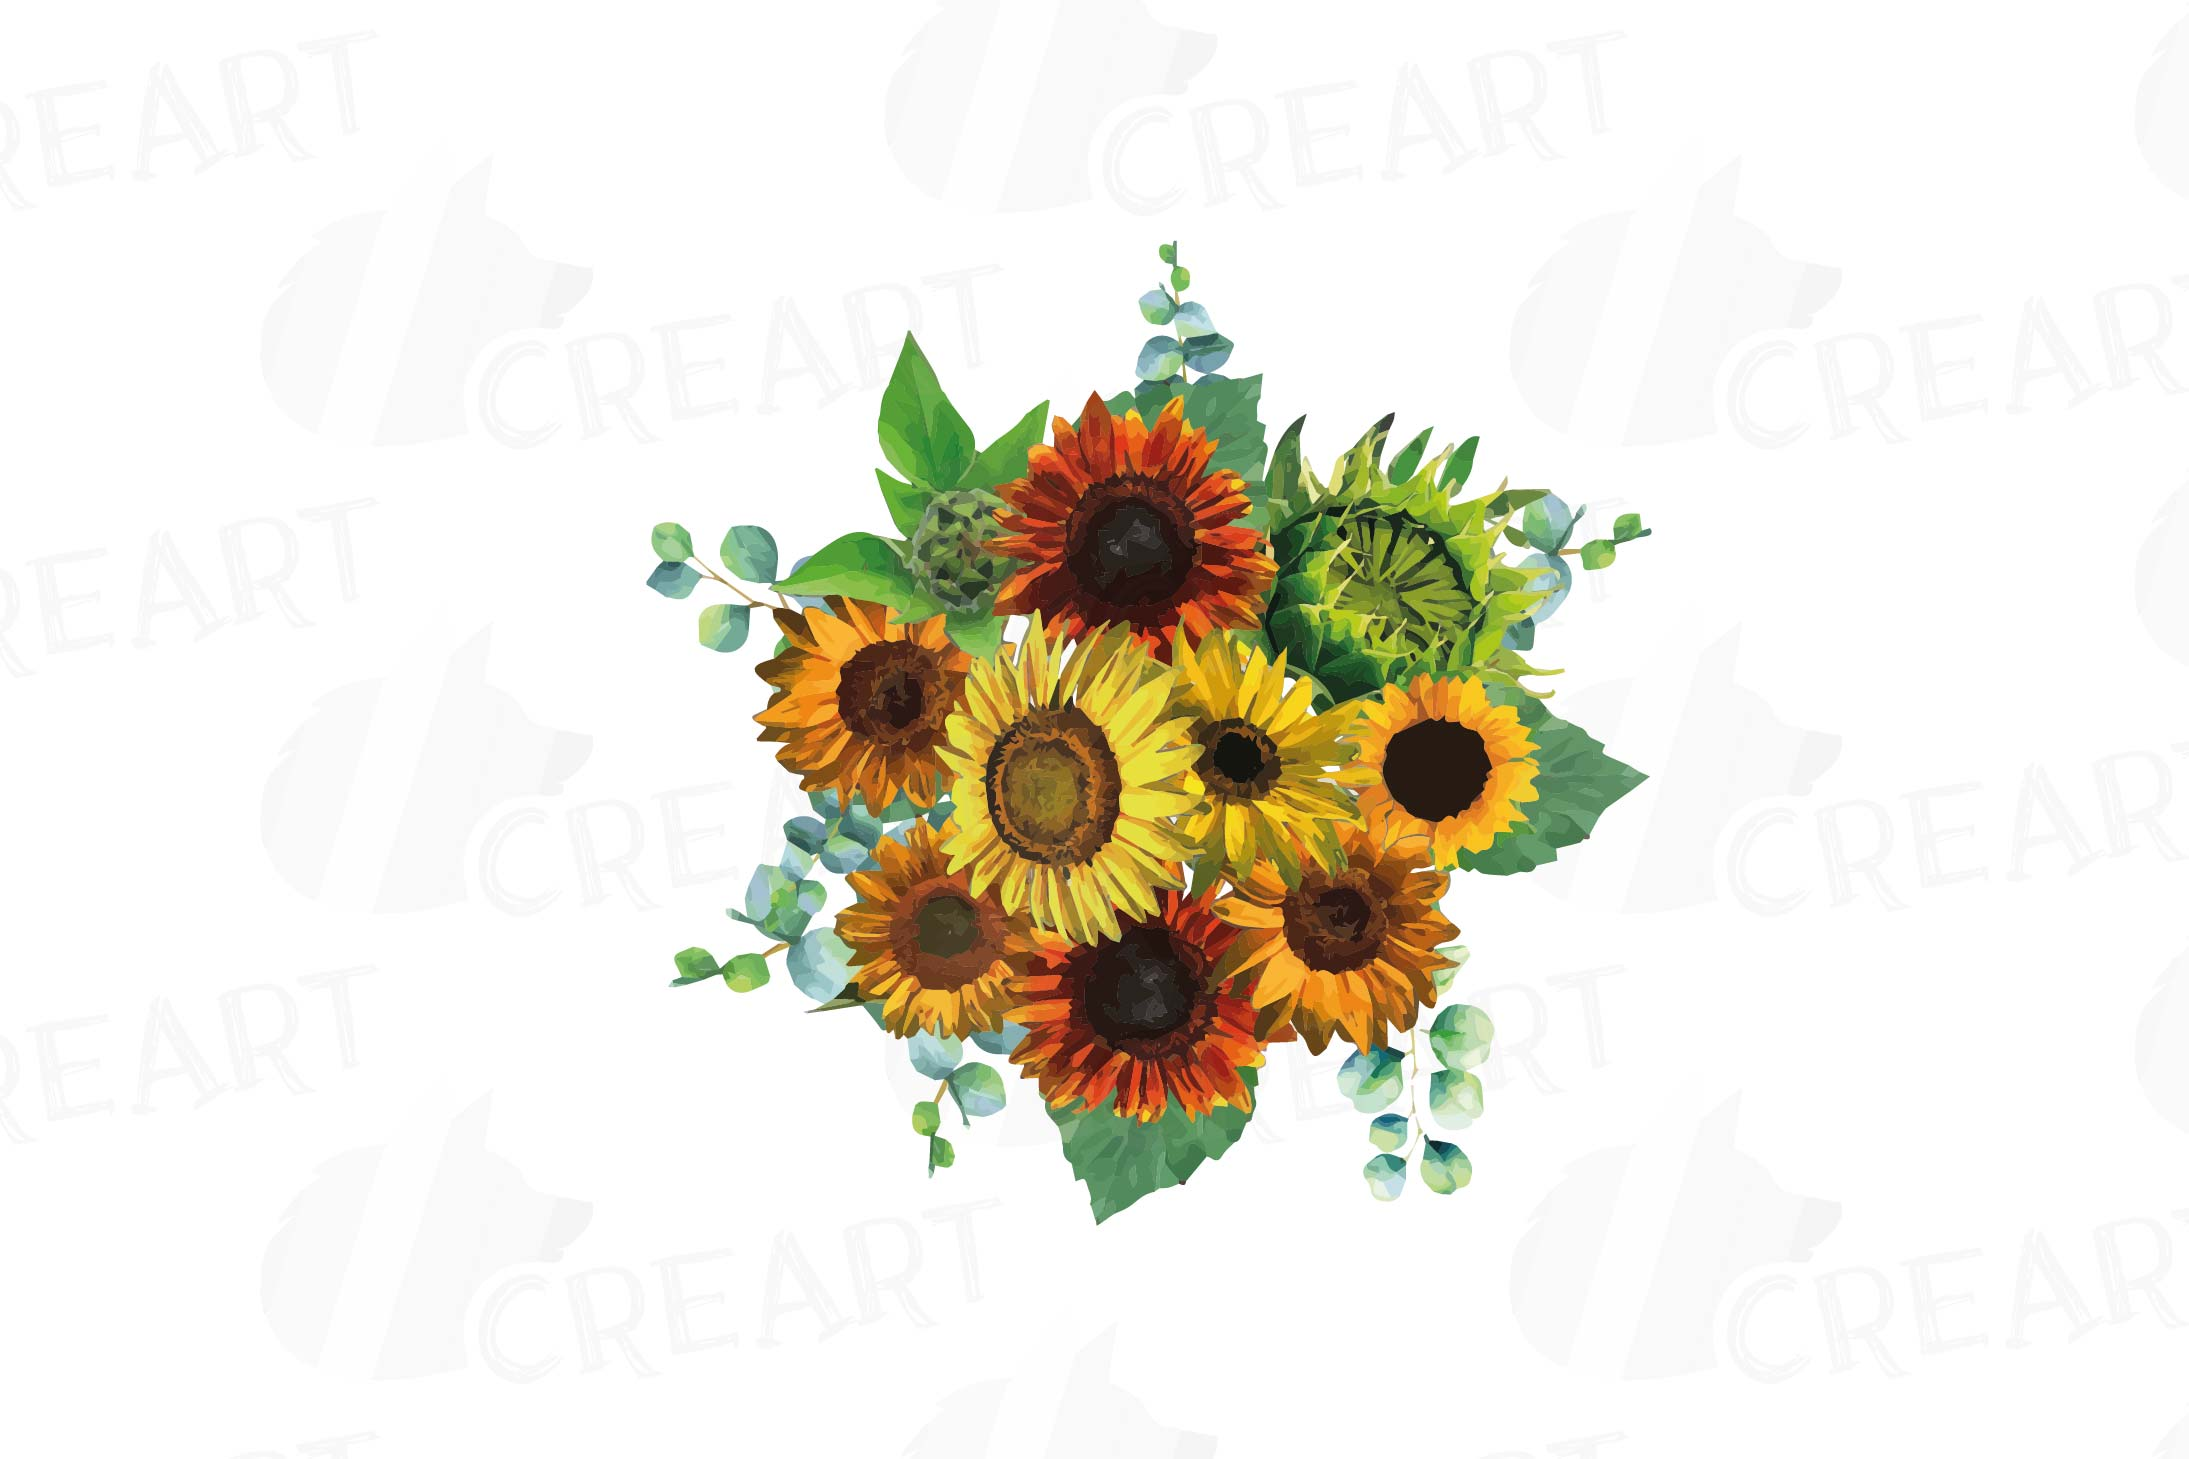 Watercolor sunflower bouquets and design elements example image 3